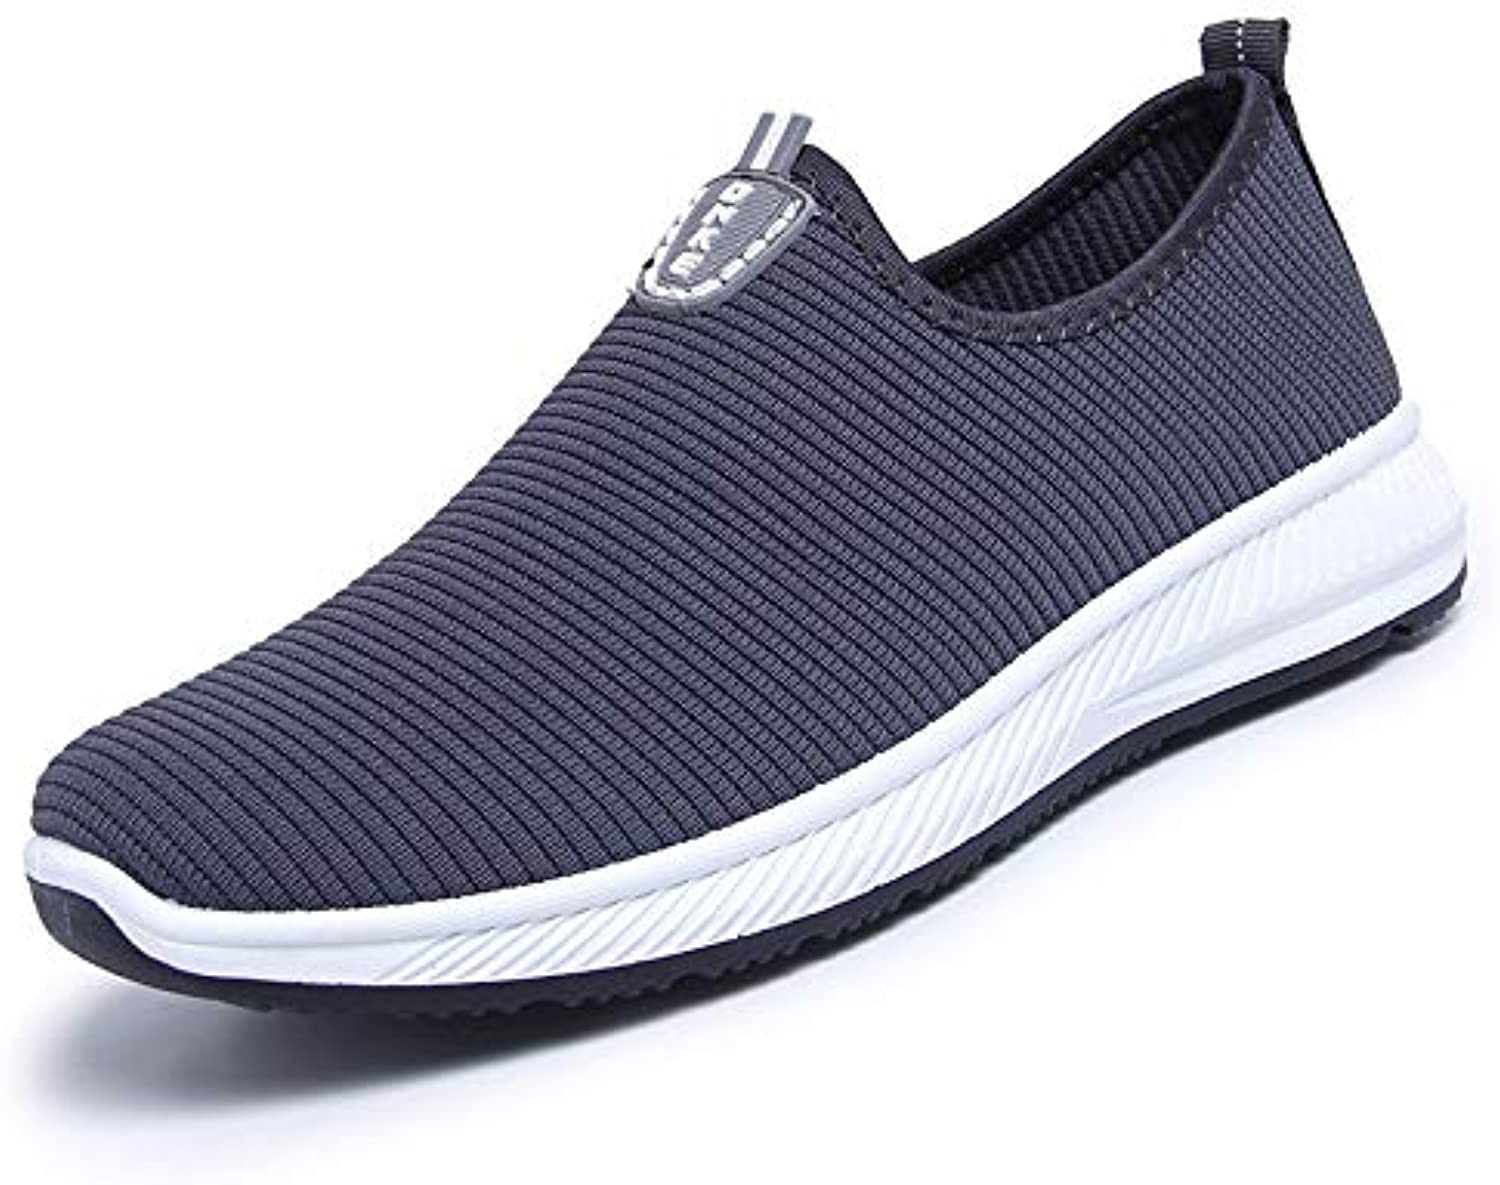 LOVDRAM Men's shoes Autumn New Real Flying Woven shoes Men'S shoes Casual One Foot Breathable Sports shoes